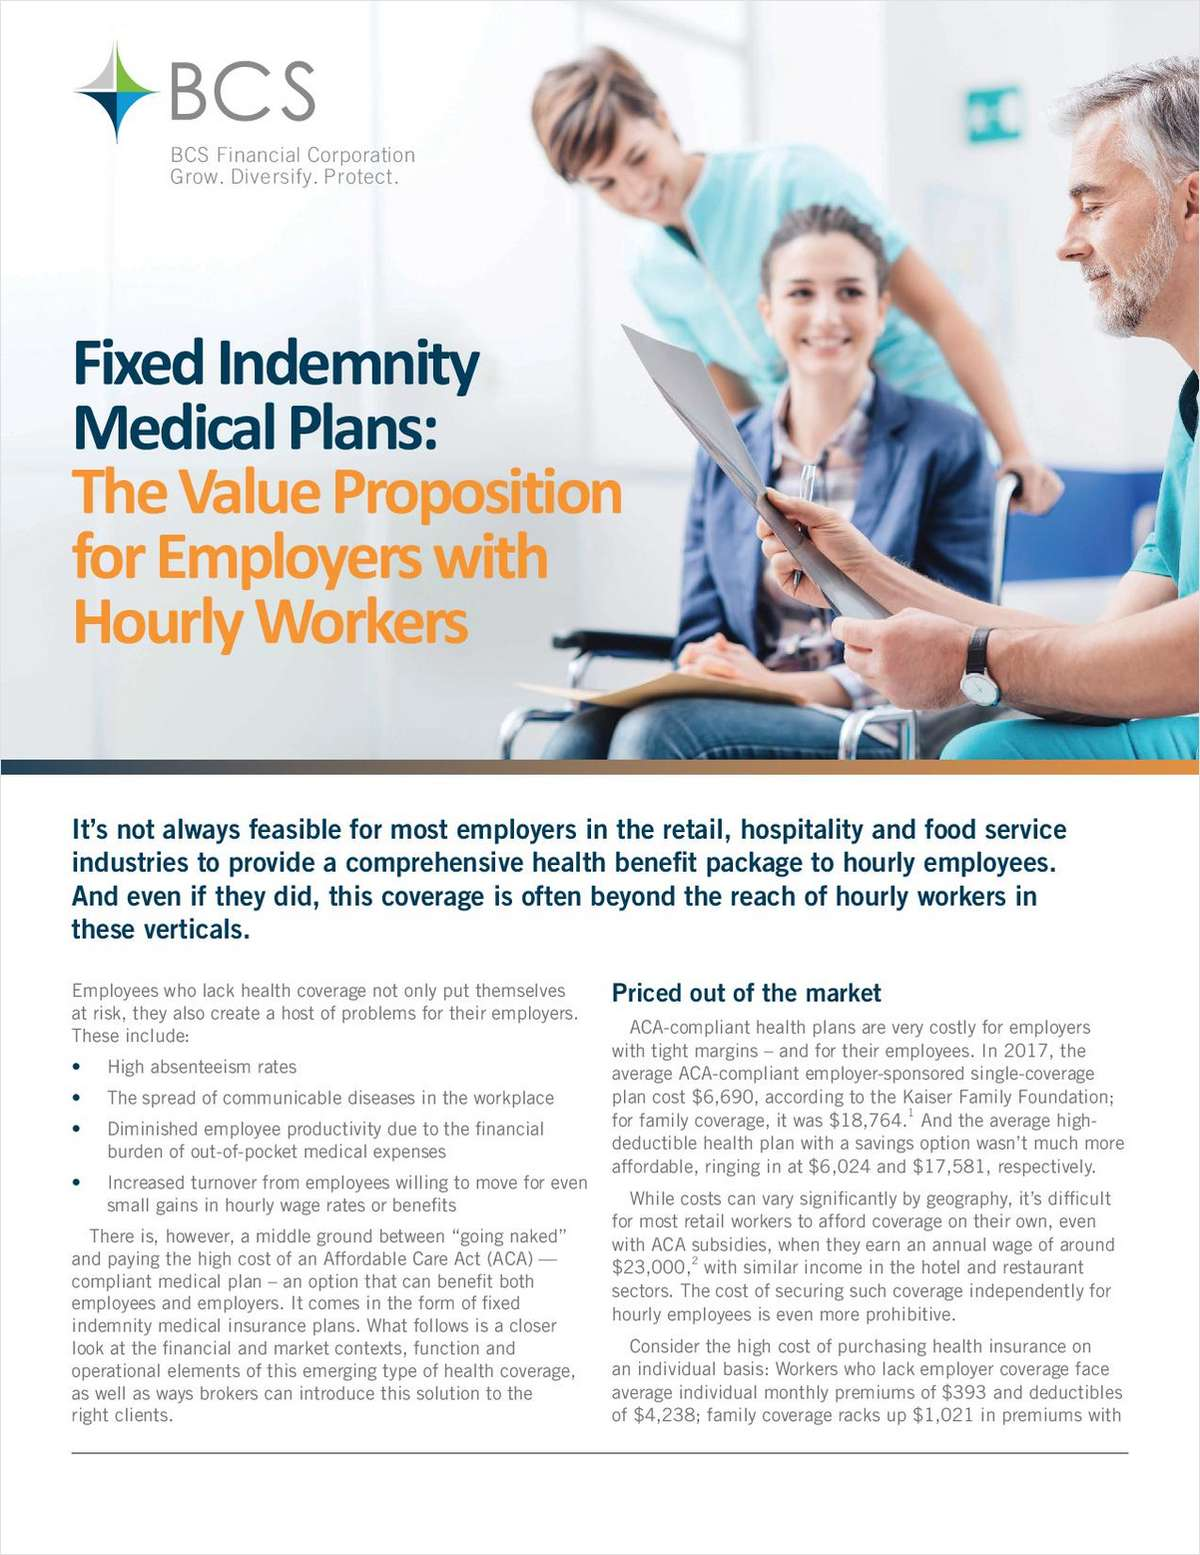 Fixed Indemnity Medical Plans: How to Cover Hourly Workers